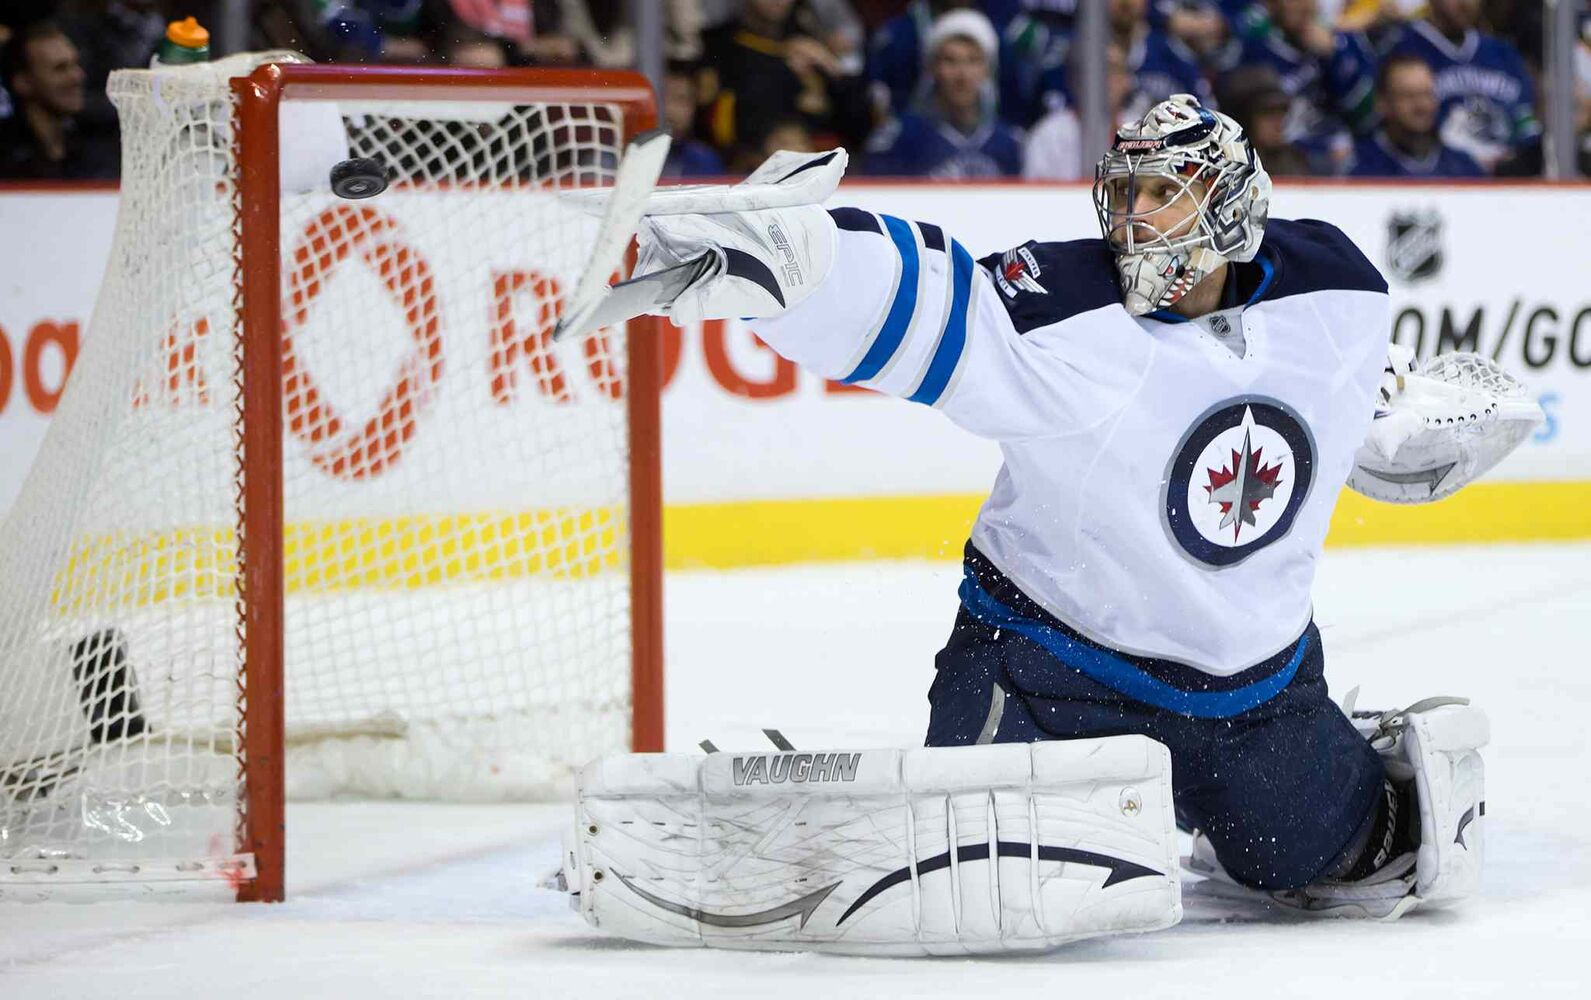 Winnipeg Jets goalie Ondrej Pavelec uses his stick to deflect a shot by Vancouver Canucks forward Ryan Kesler wide of the goal during the first period. (DARRYL DYCK / THE CANADIAN PRESS)